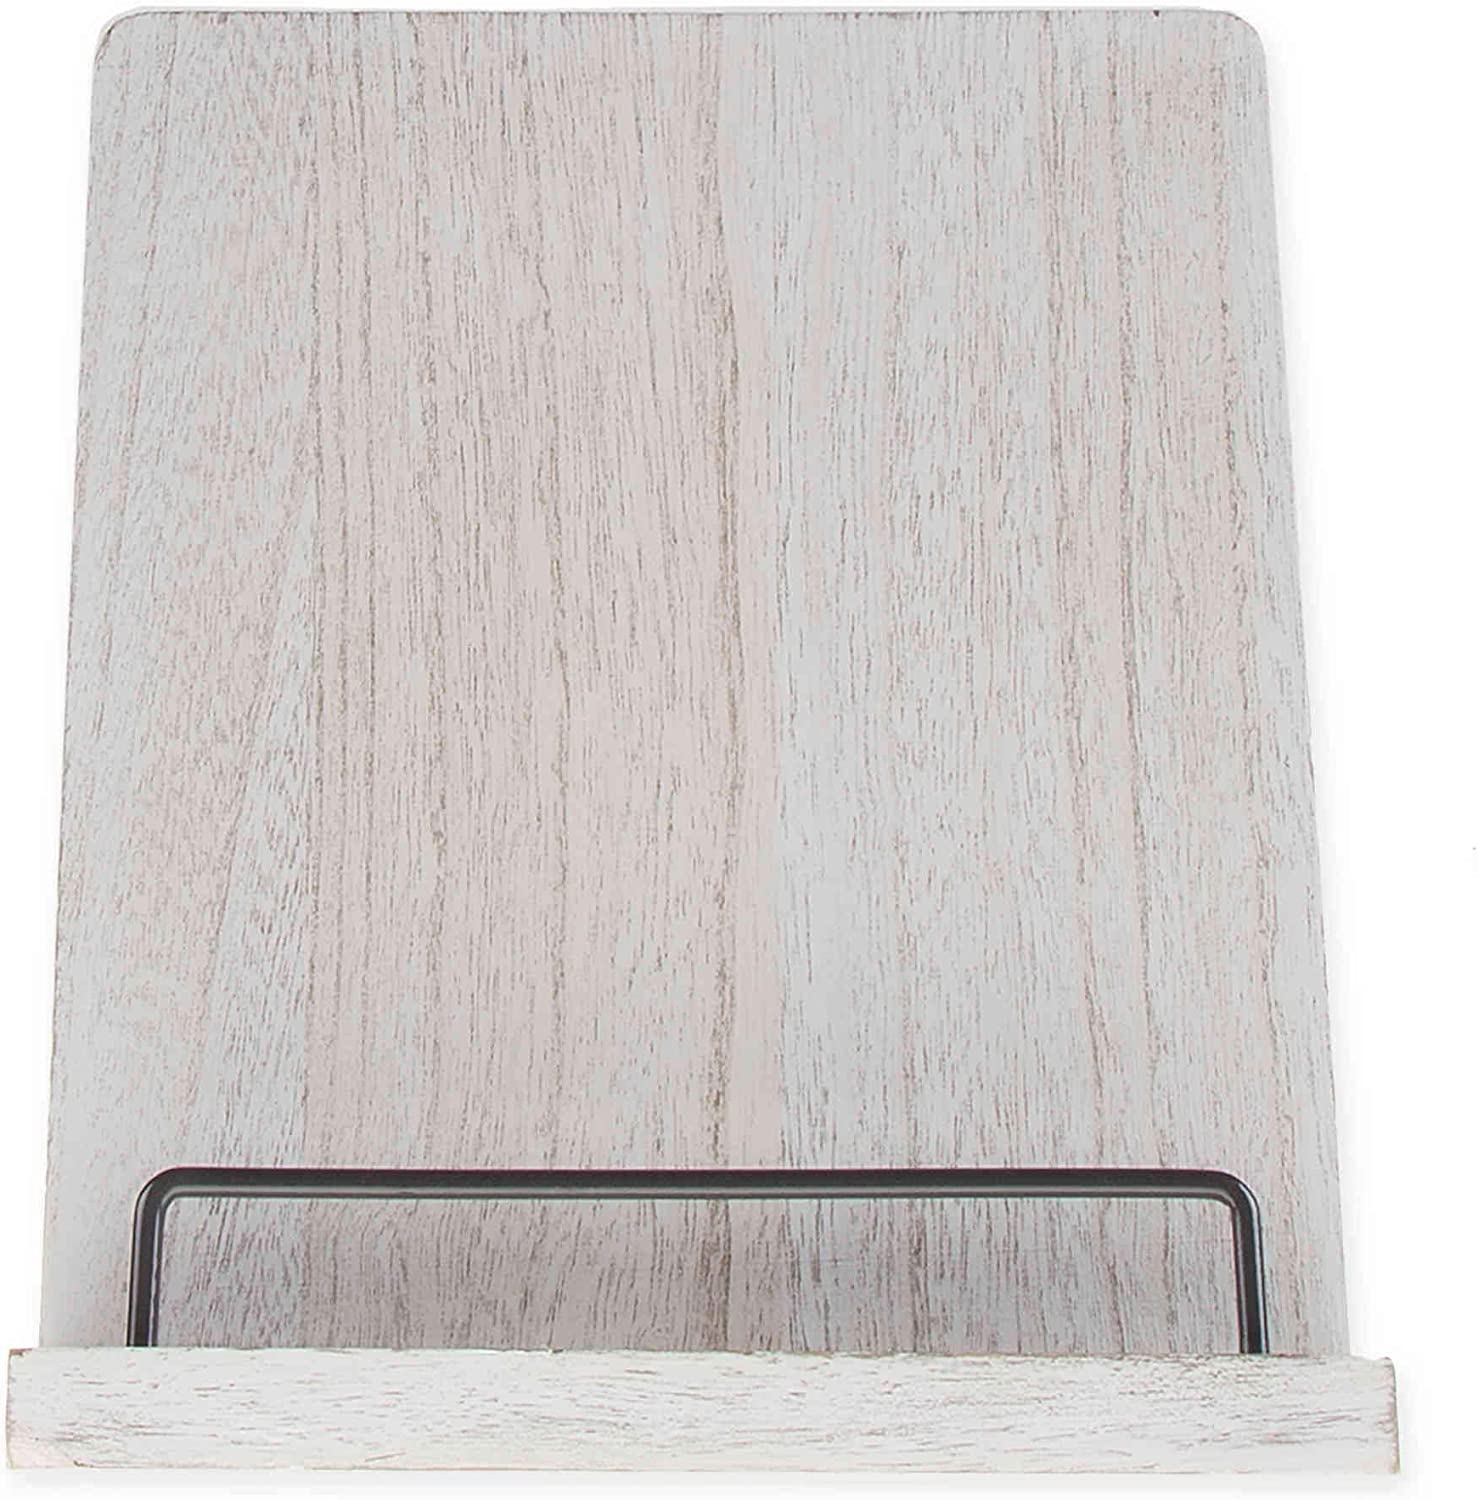 Home Wood Cookbook Holder in White Wash | For tablet computers and cookbooks